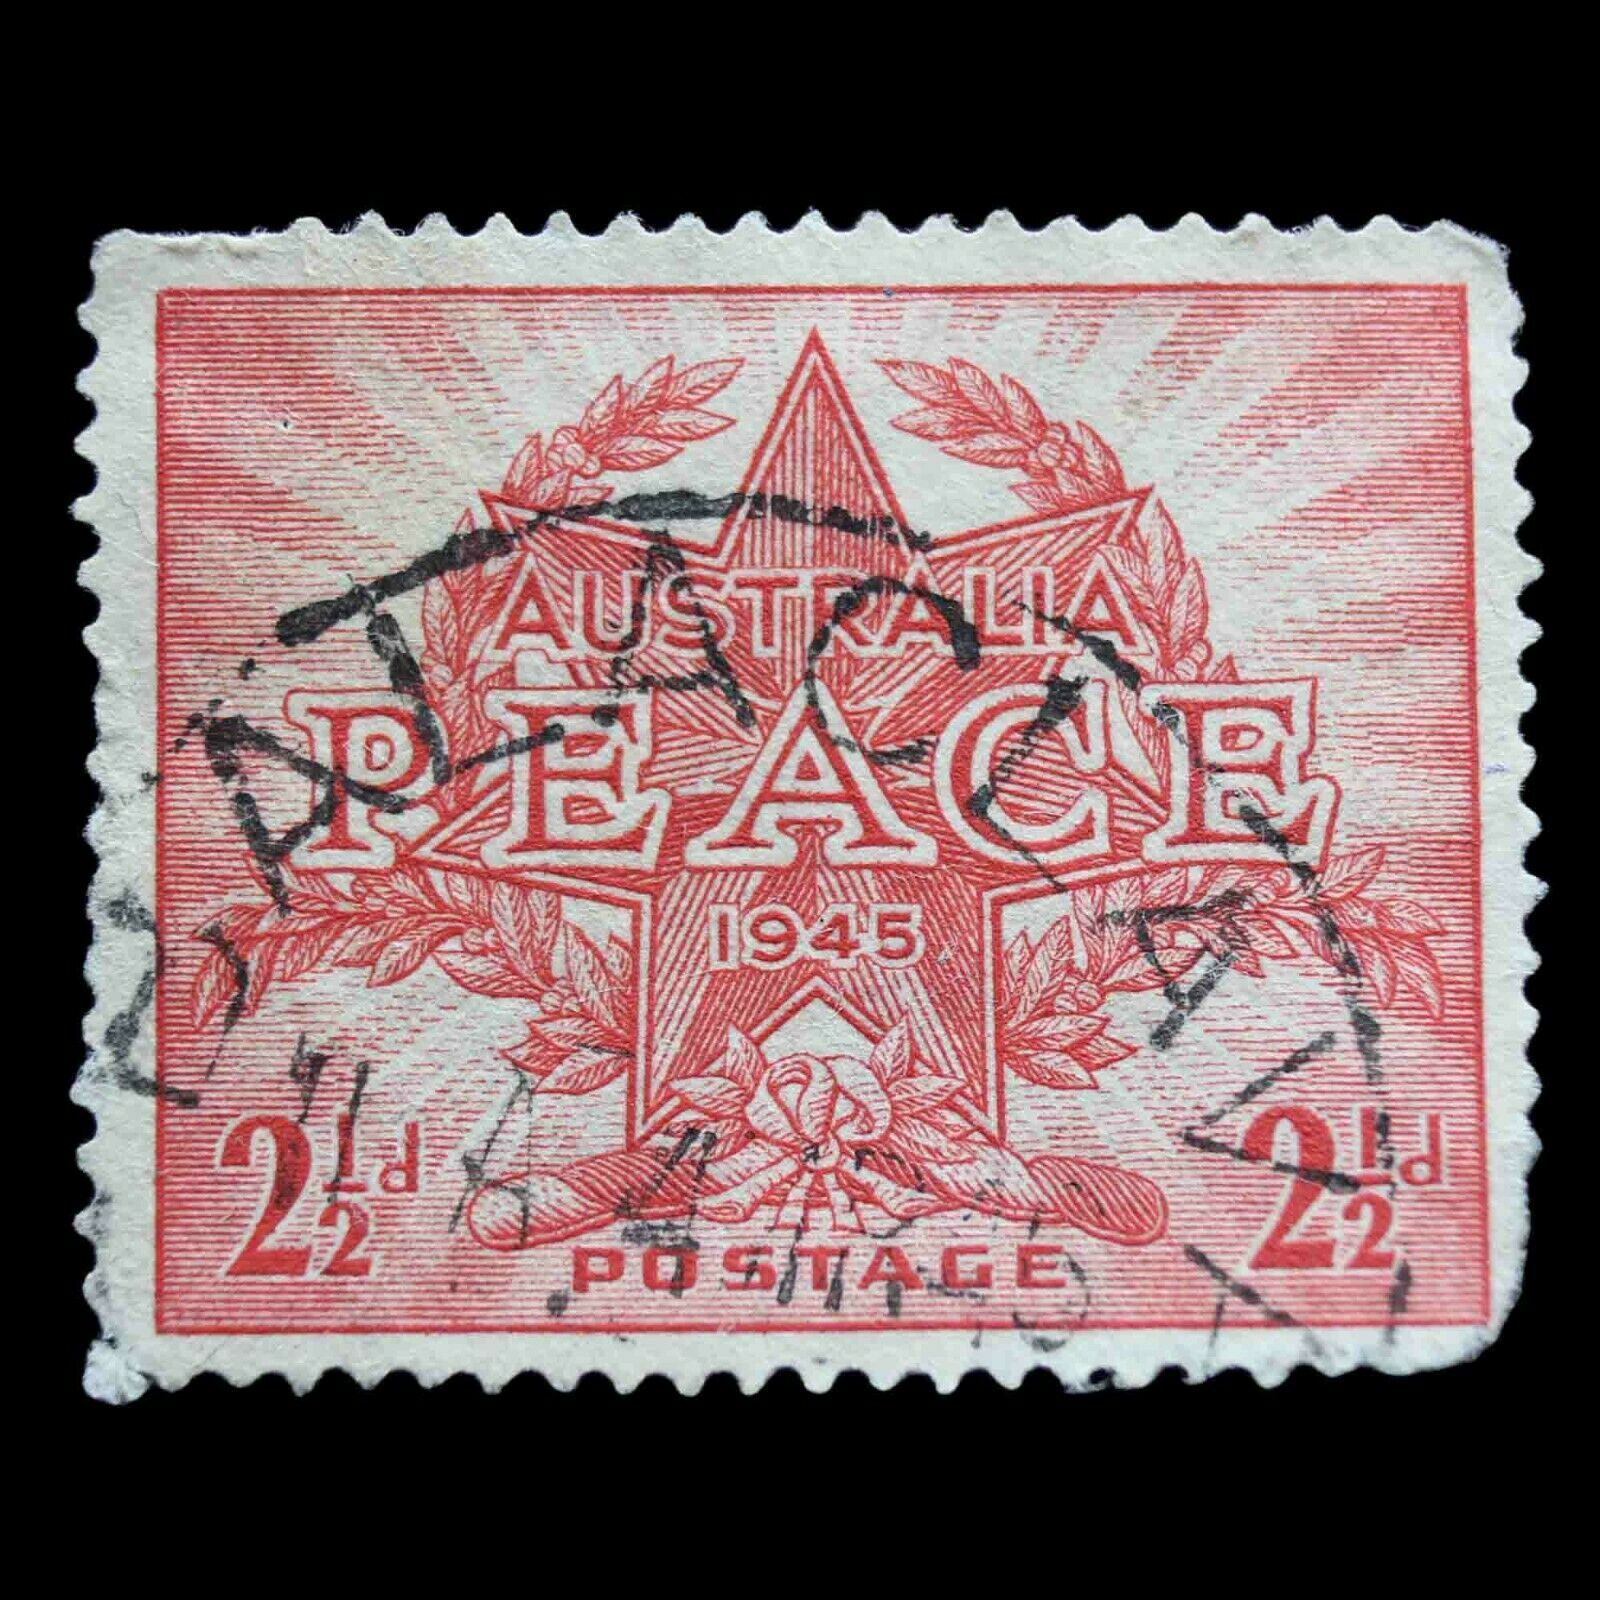 Primary image for Australia 1946 2 and half d - Australian Penny Used Postage Stamp Star and Wreat